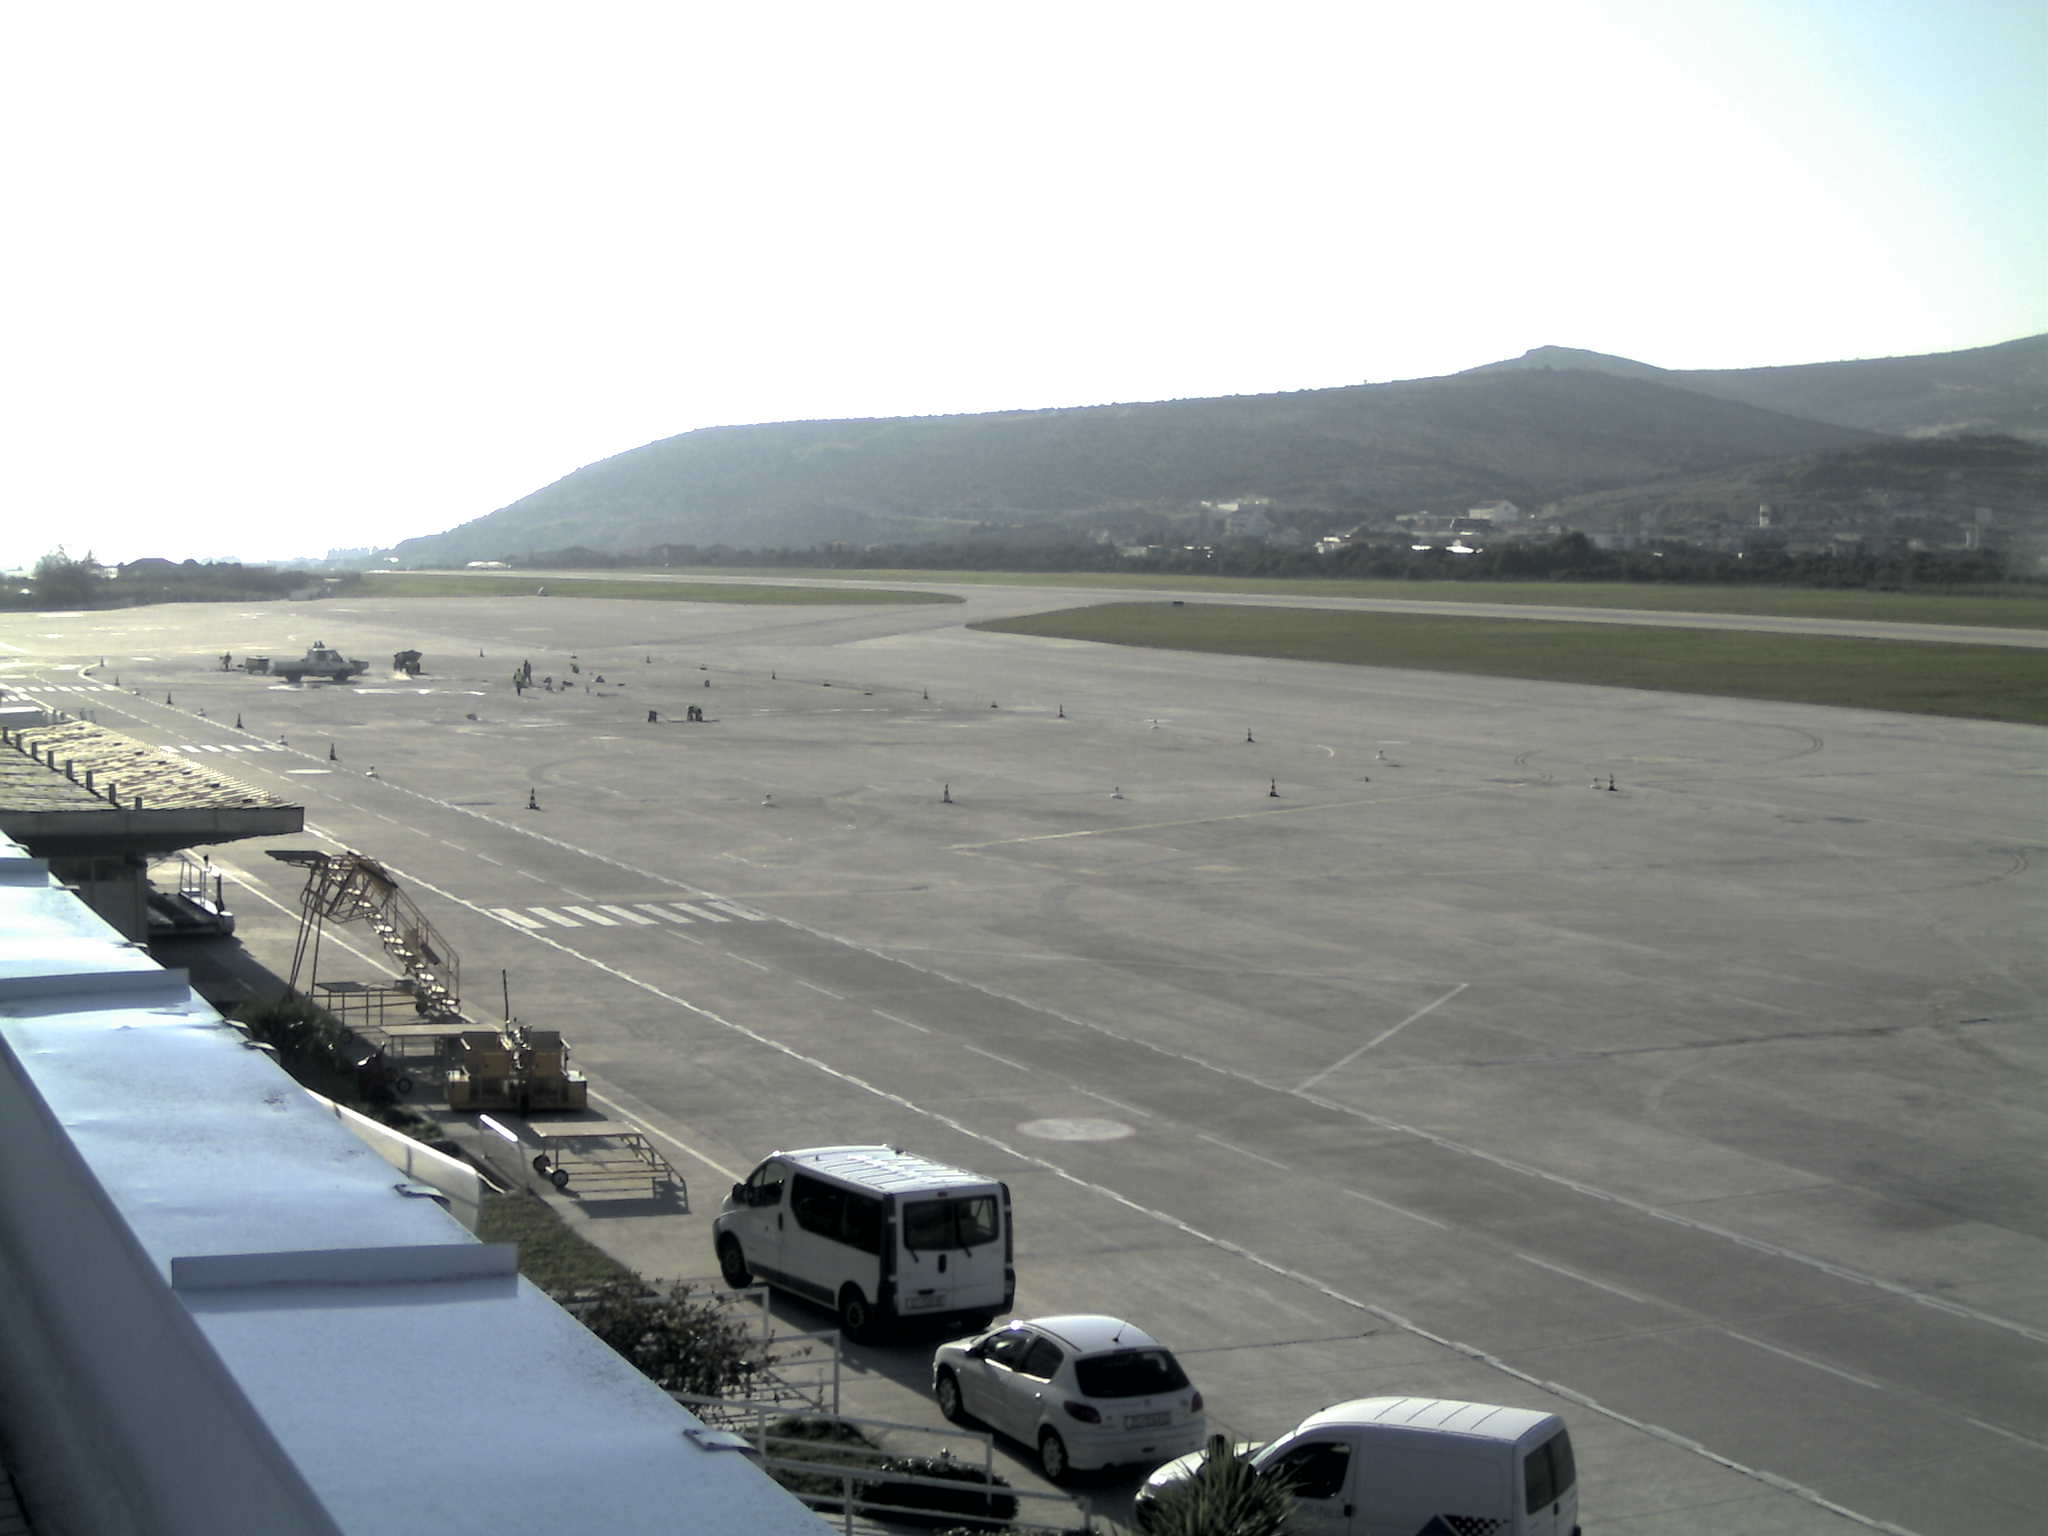 https://cam-earth.do.am/dir/europe/croatia/split_airport_split/38-1-0-220